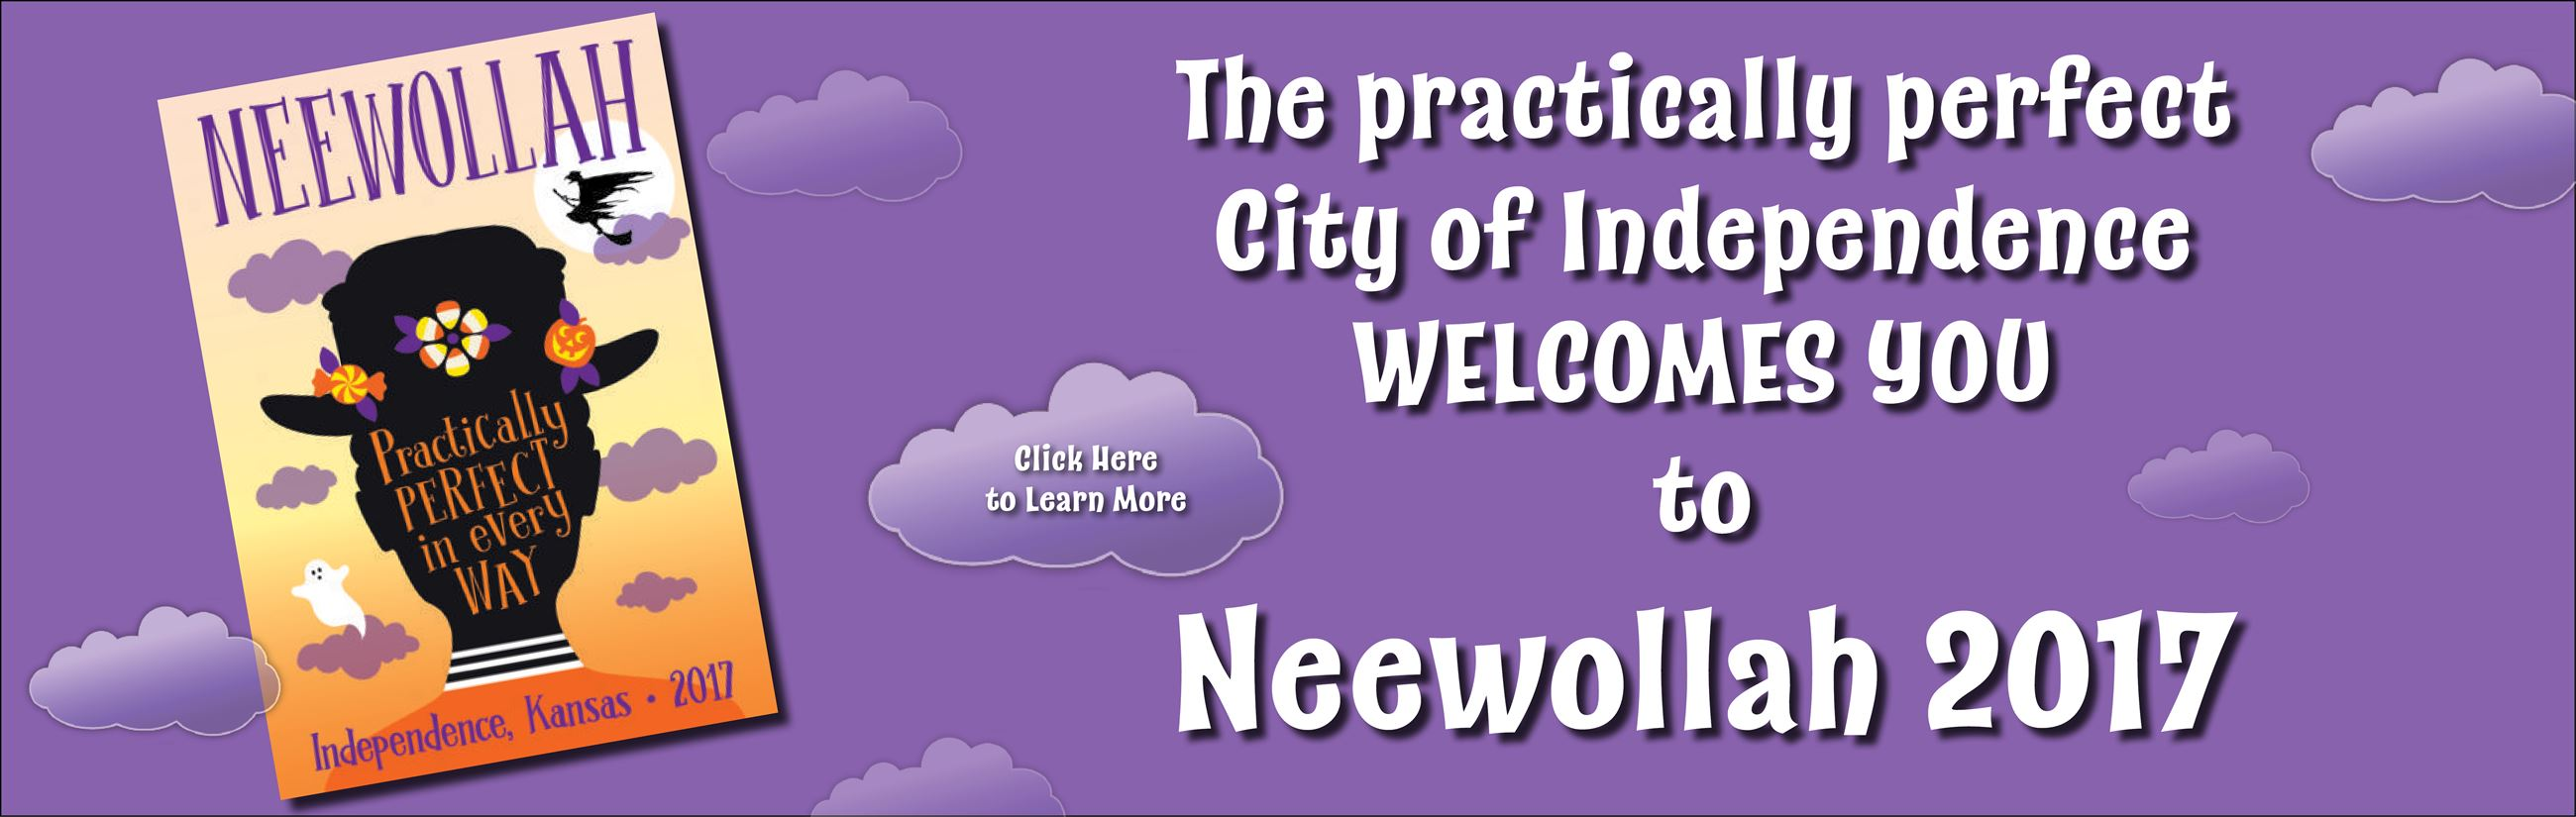 City of Independence Neewollah Web Banner 2017